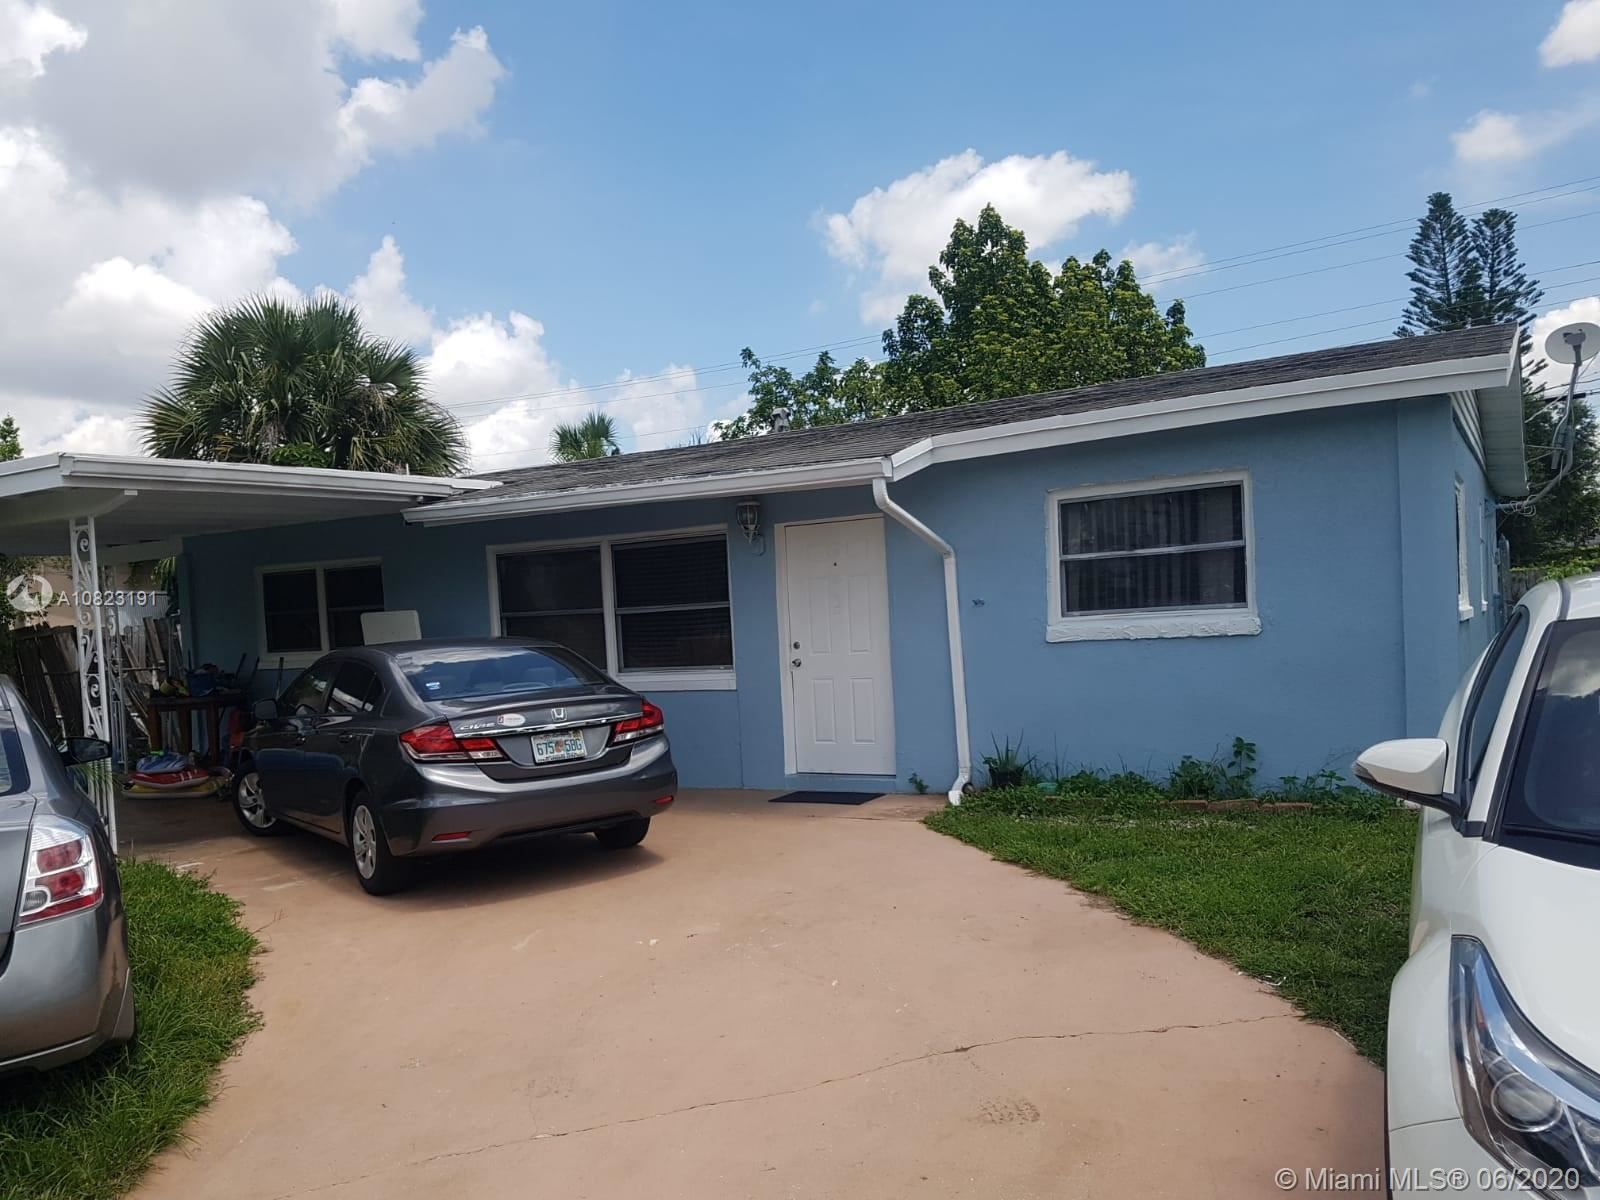 6079 Fairgreen Rd, West Palm Beach, FL 33417 - #: A10823191